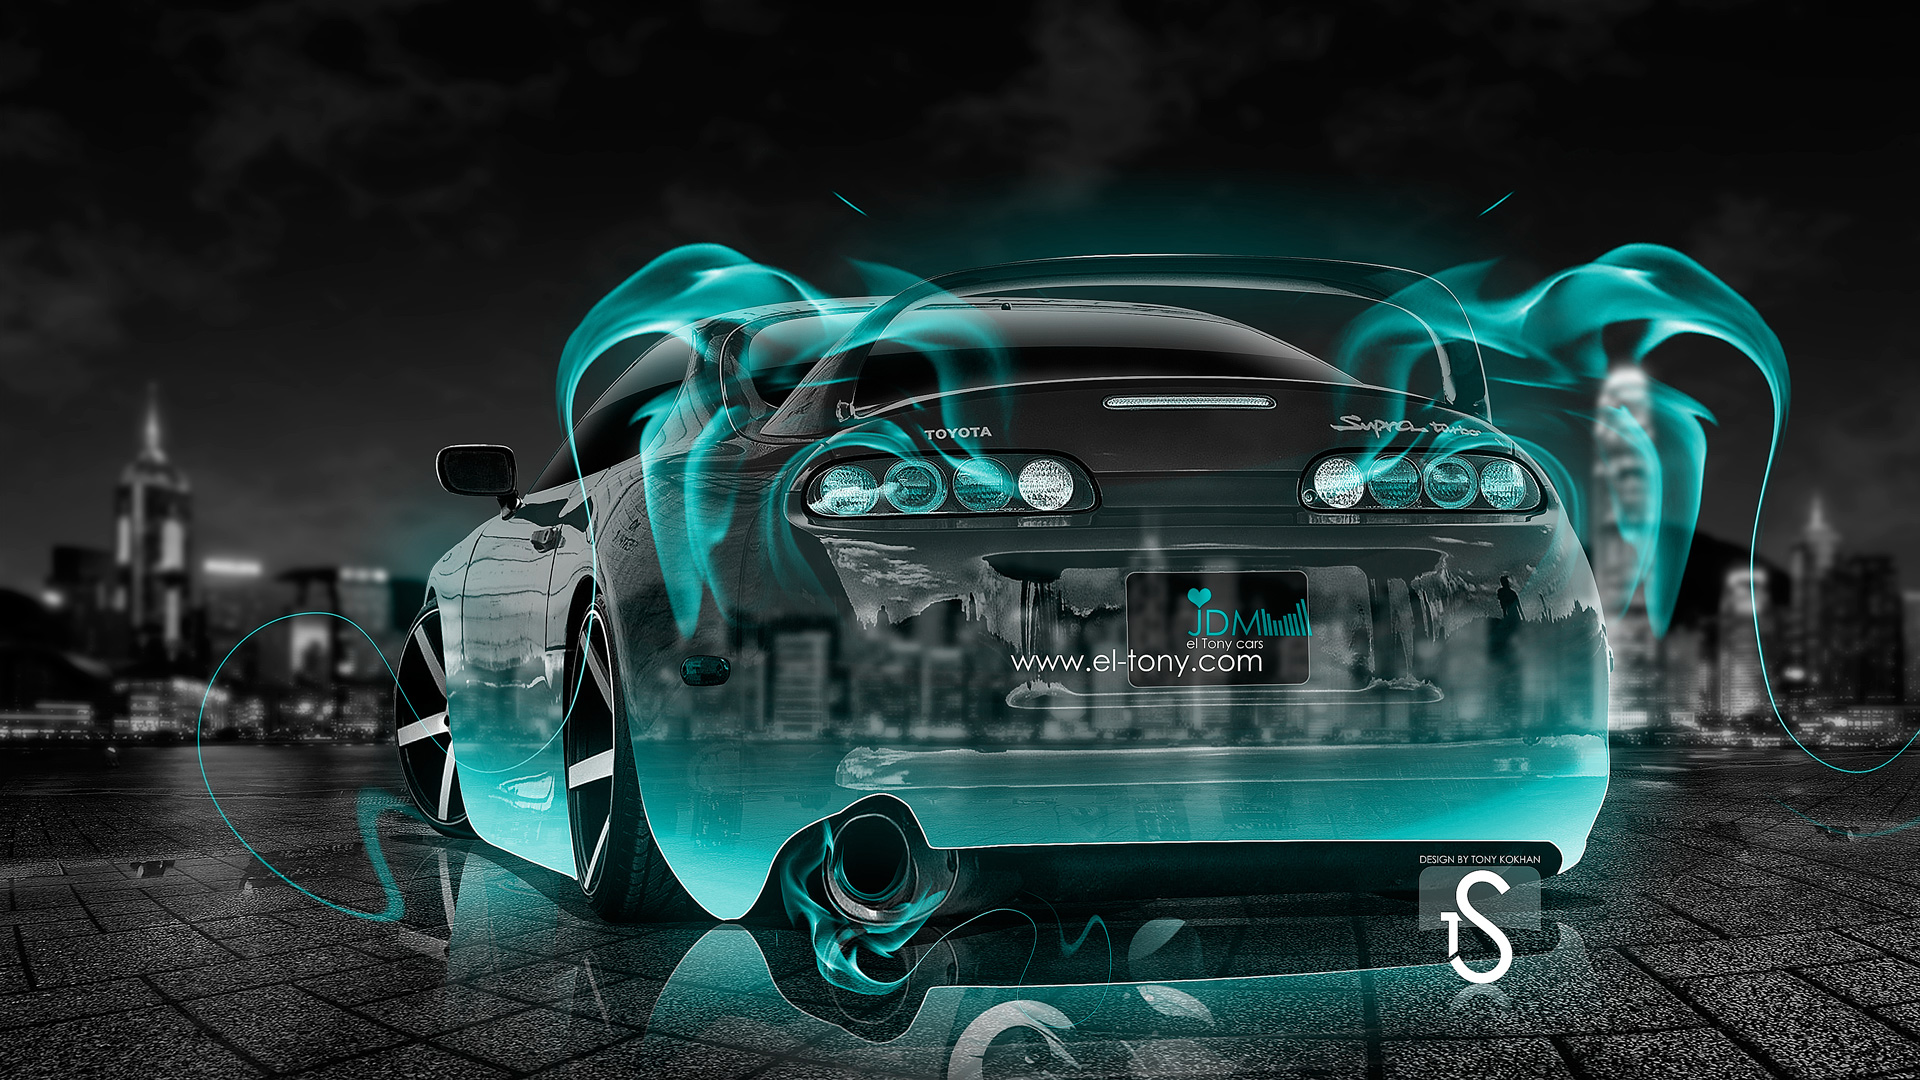 Toyota Supra JDM Turquoise Fire Crystal Car 2013